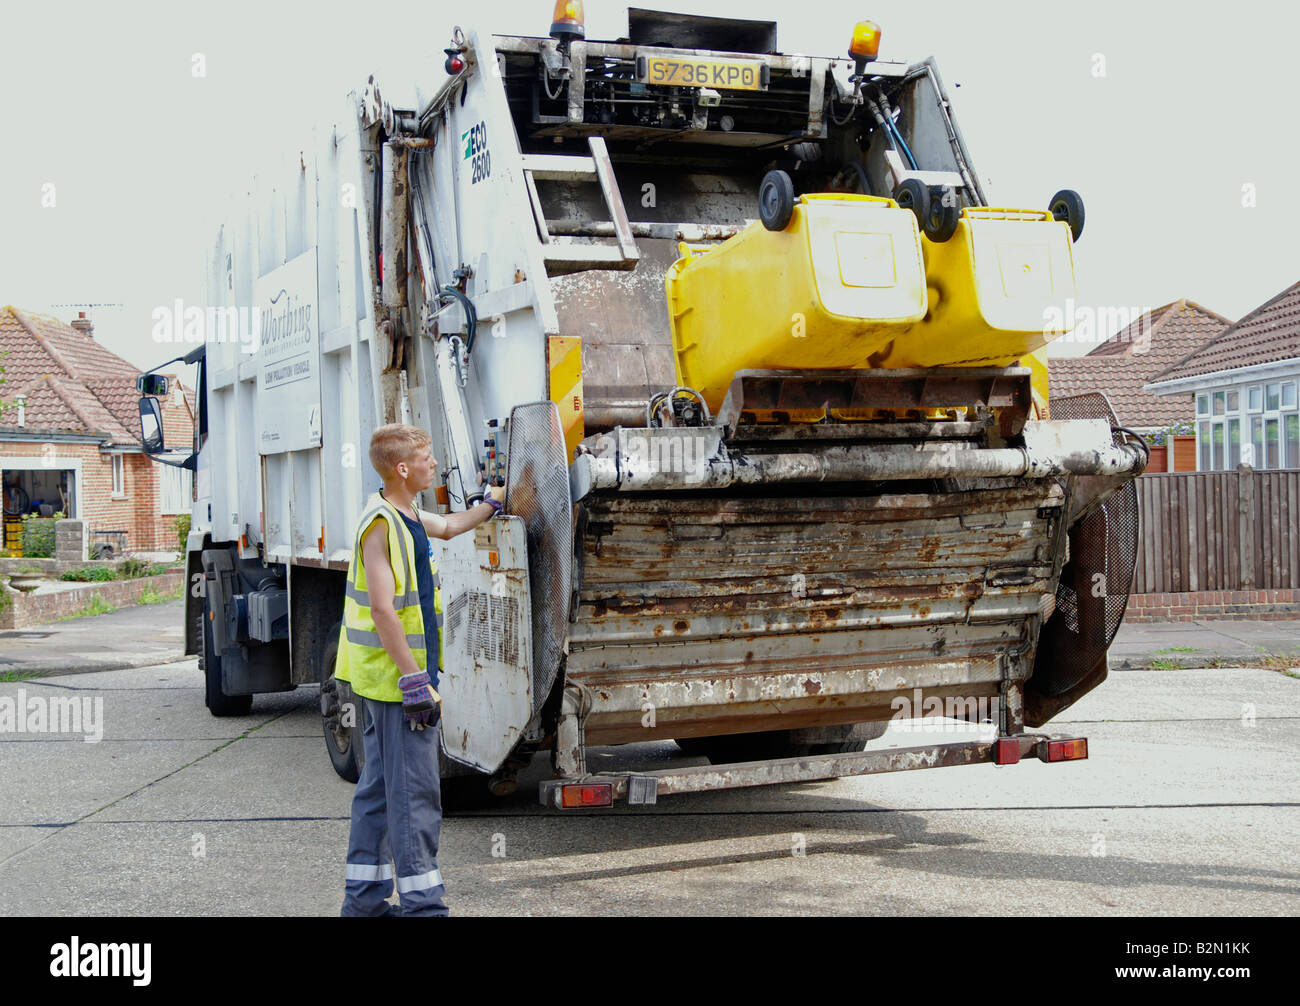 dustman colllecting rubbish for landfill Worthing Adur area West Sussex - Stock Image